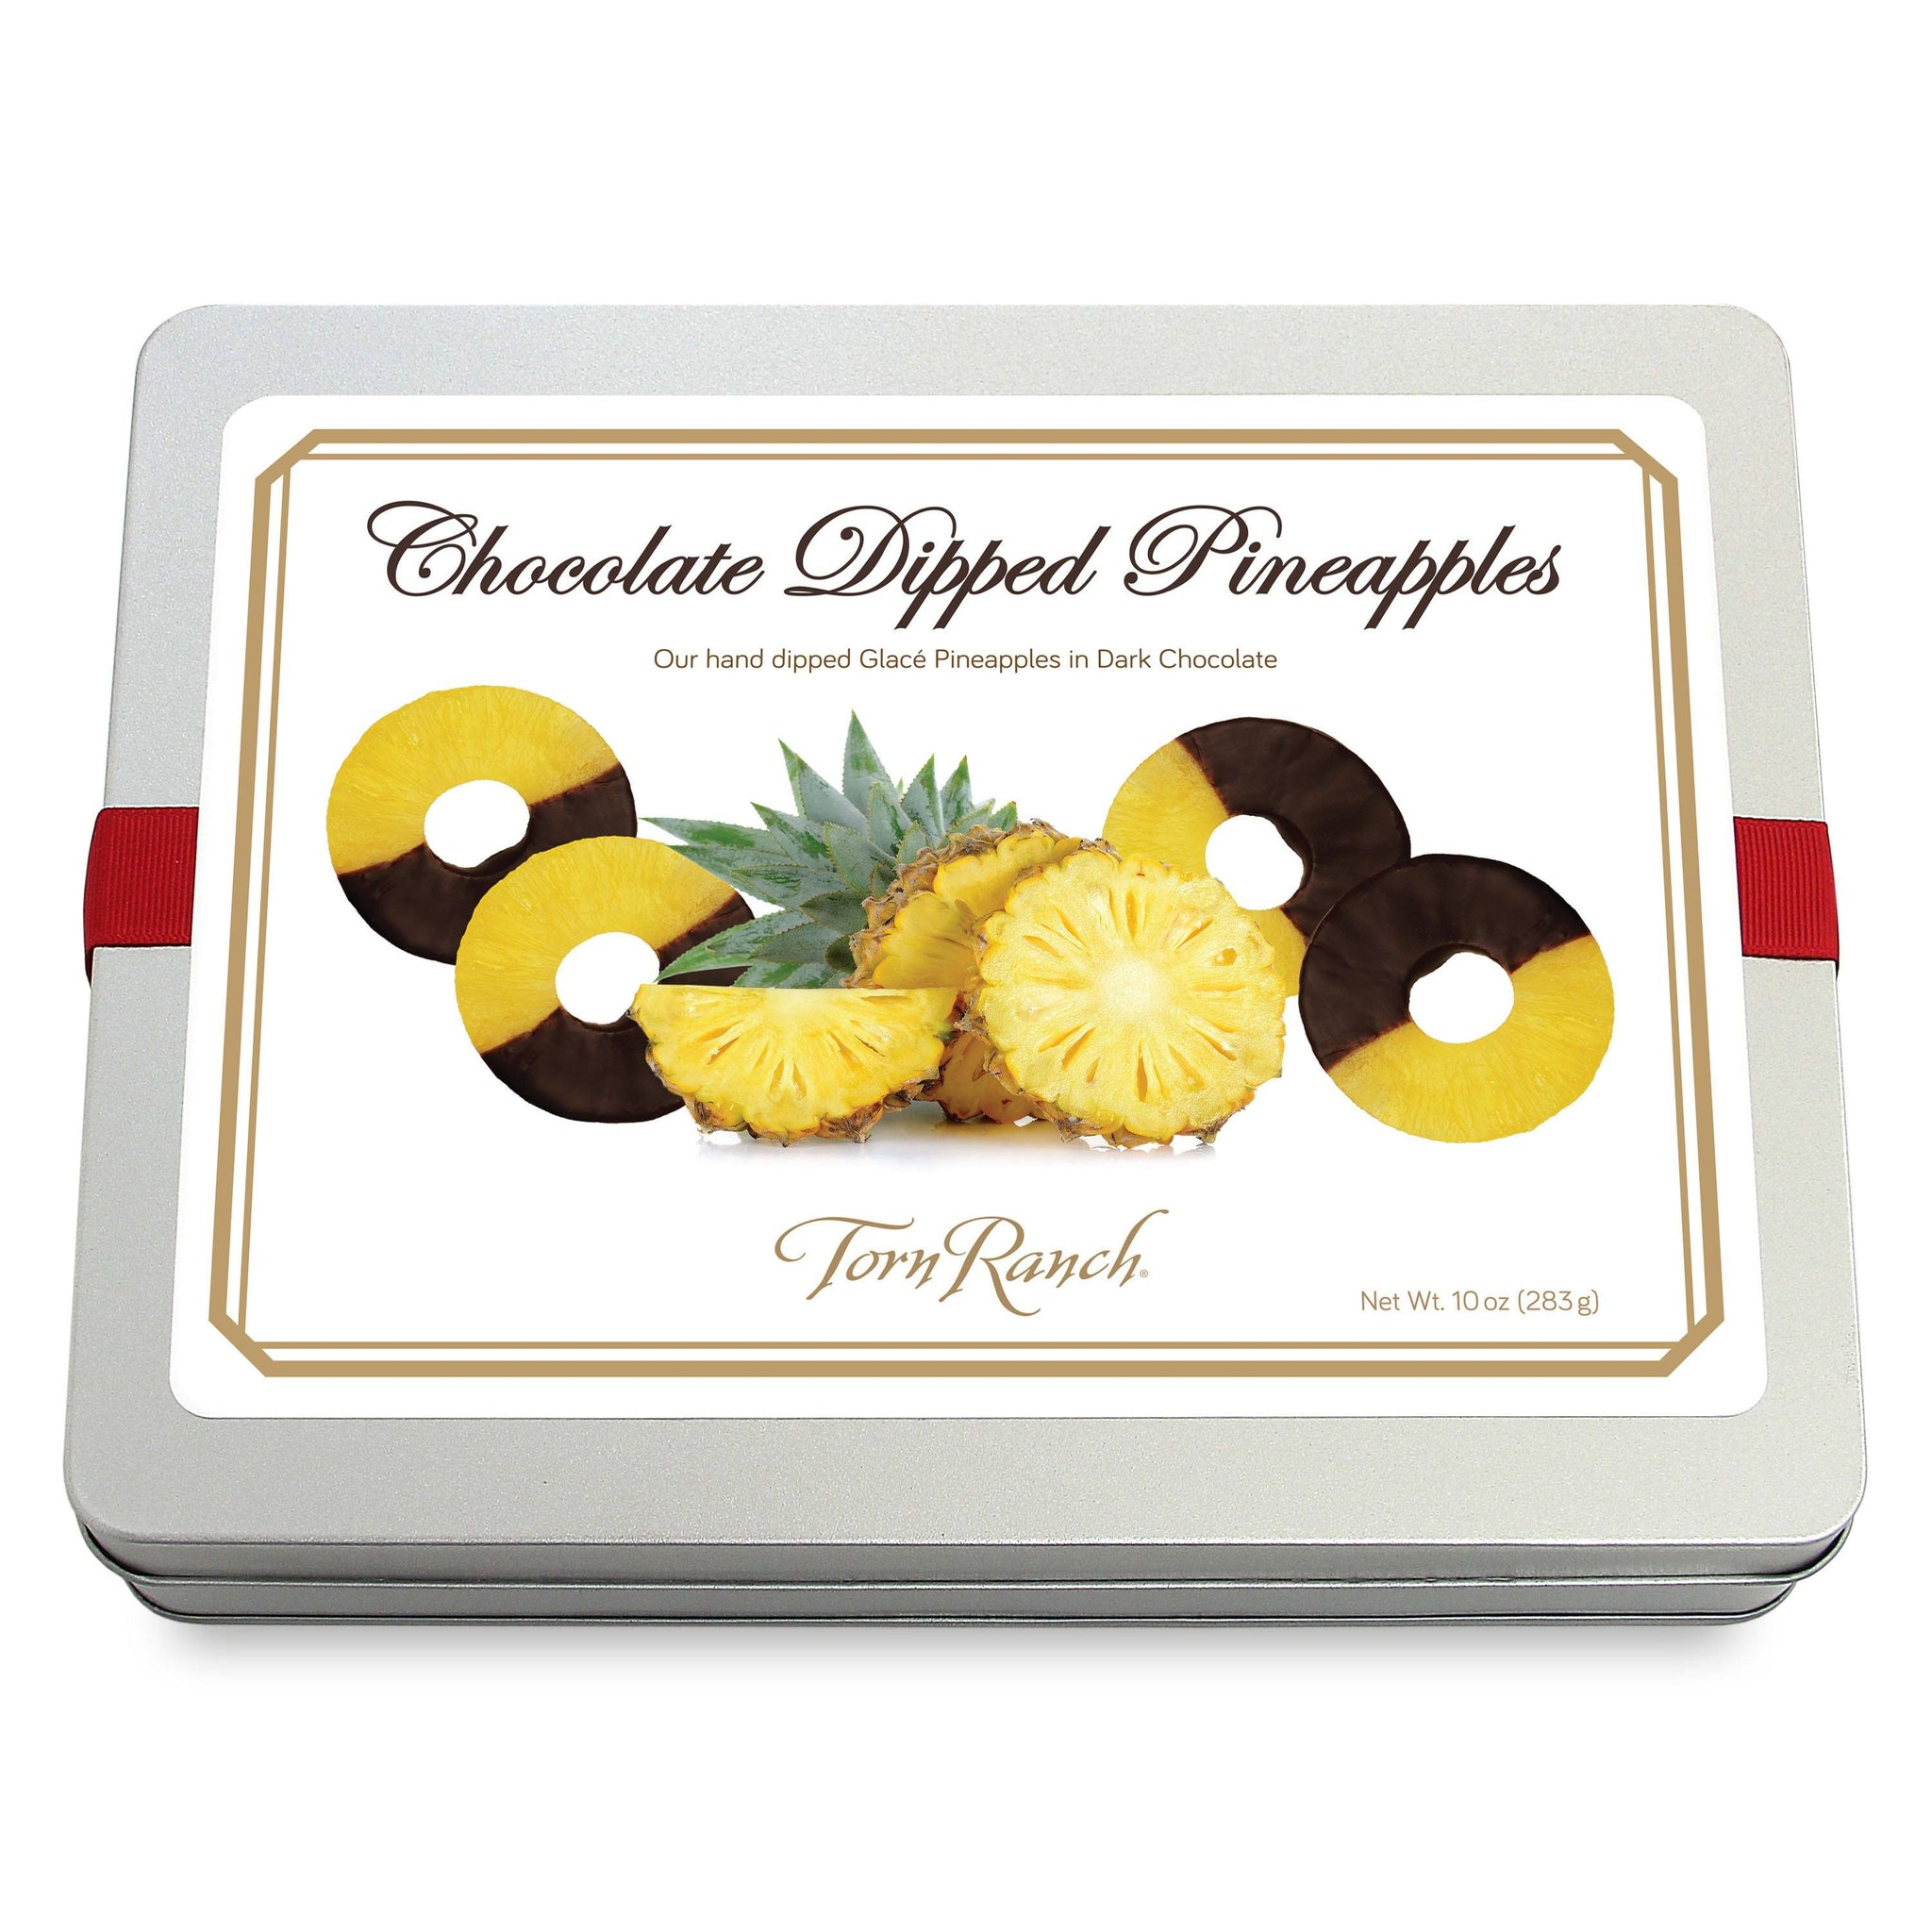 Signature Reserve Chocolate Dipped Pineapple Slices Gourmet Chocolates & Toffee vendor-unknown